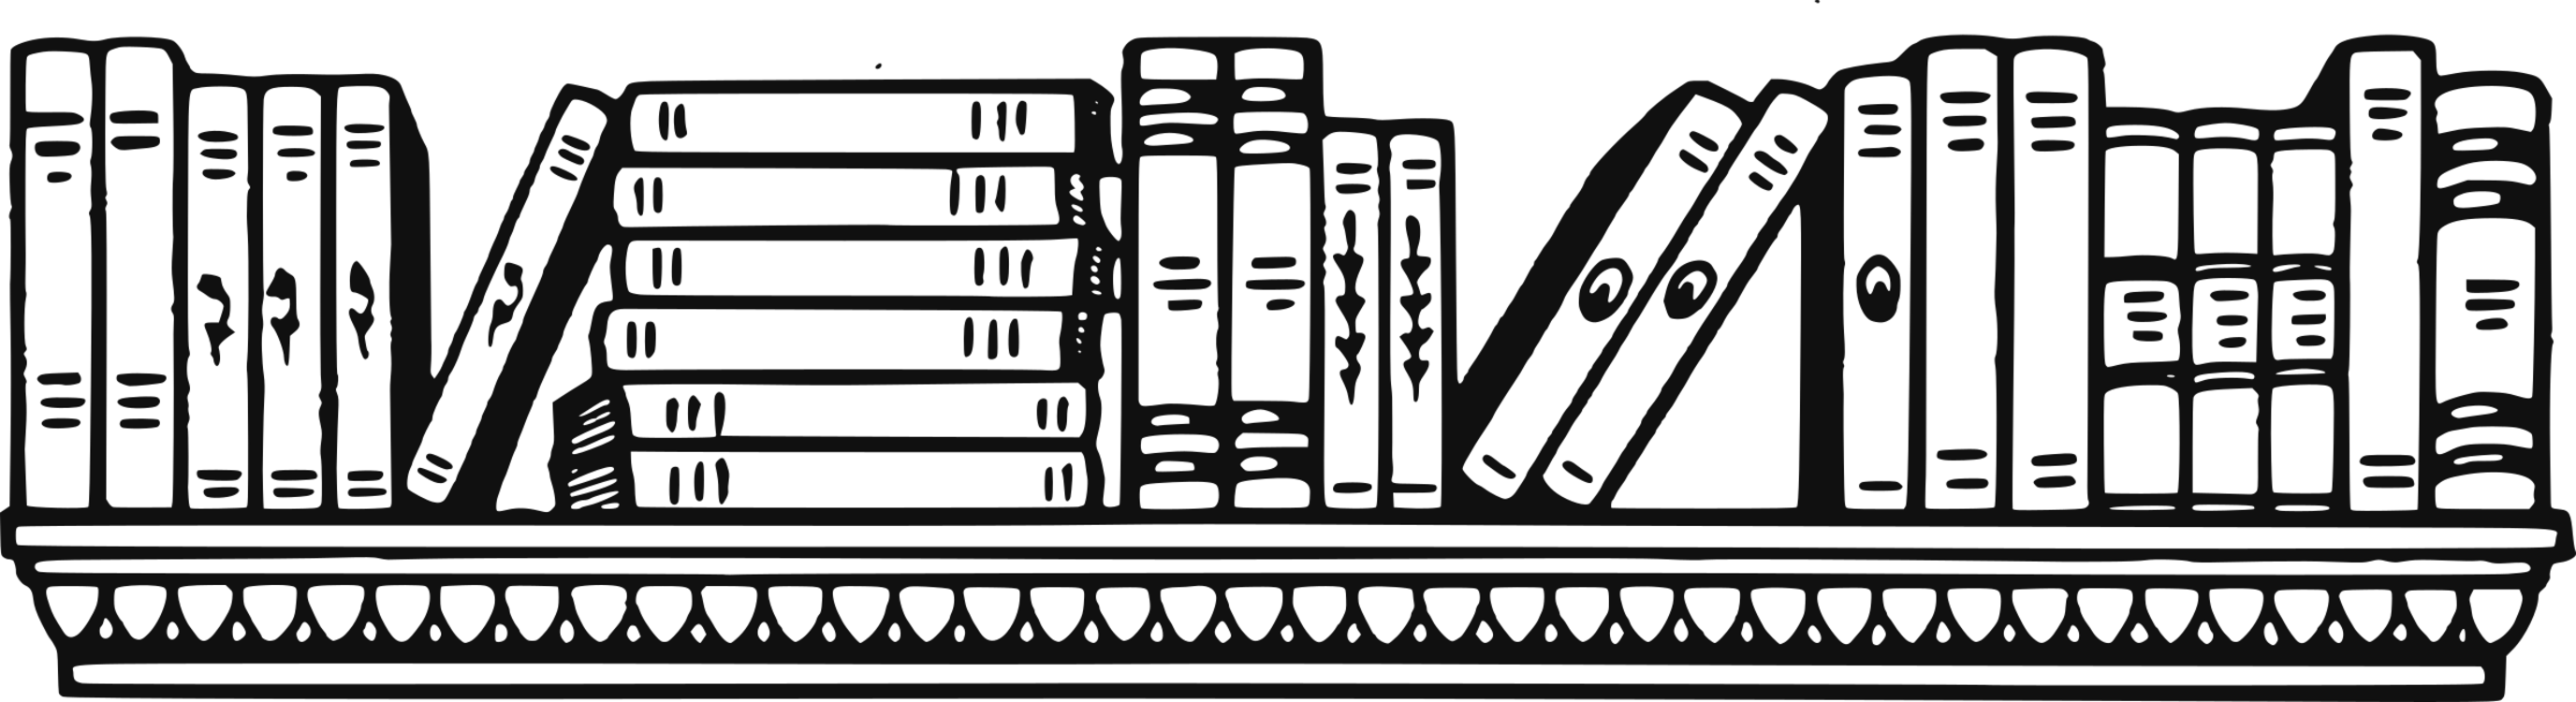 Banner Library Download Librarian Clipart Book Cupboard.